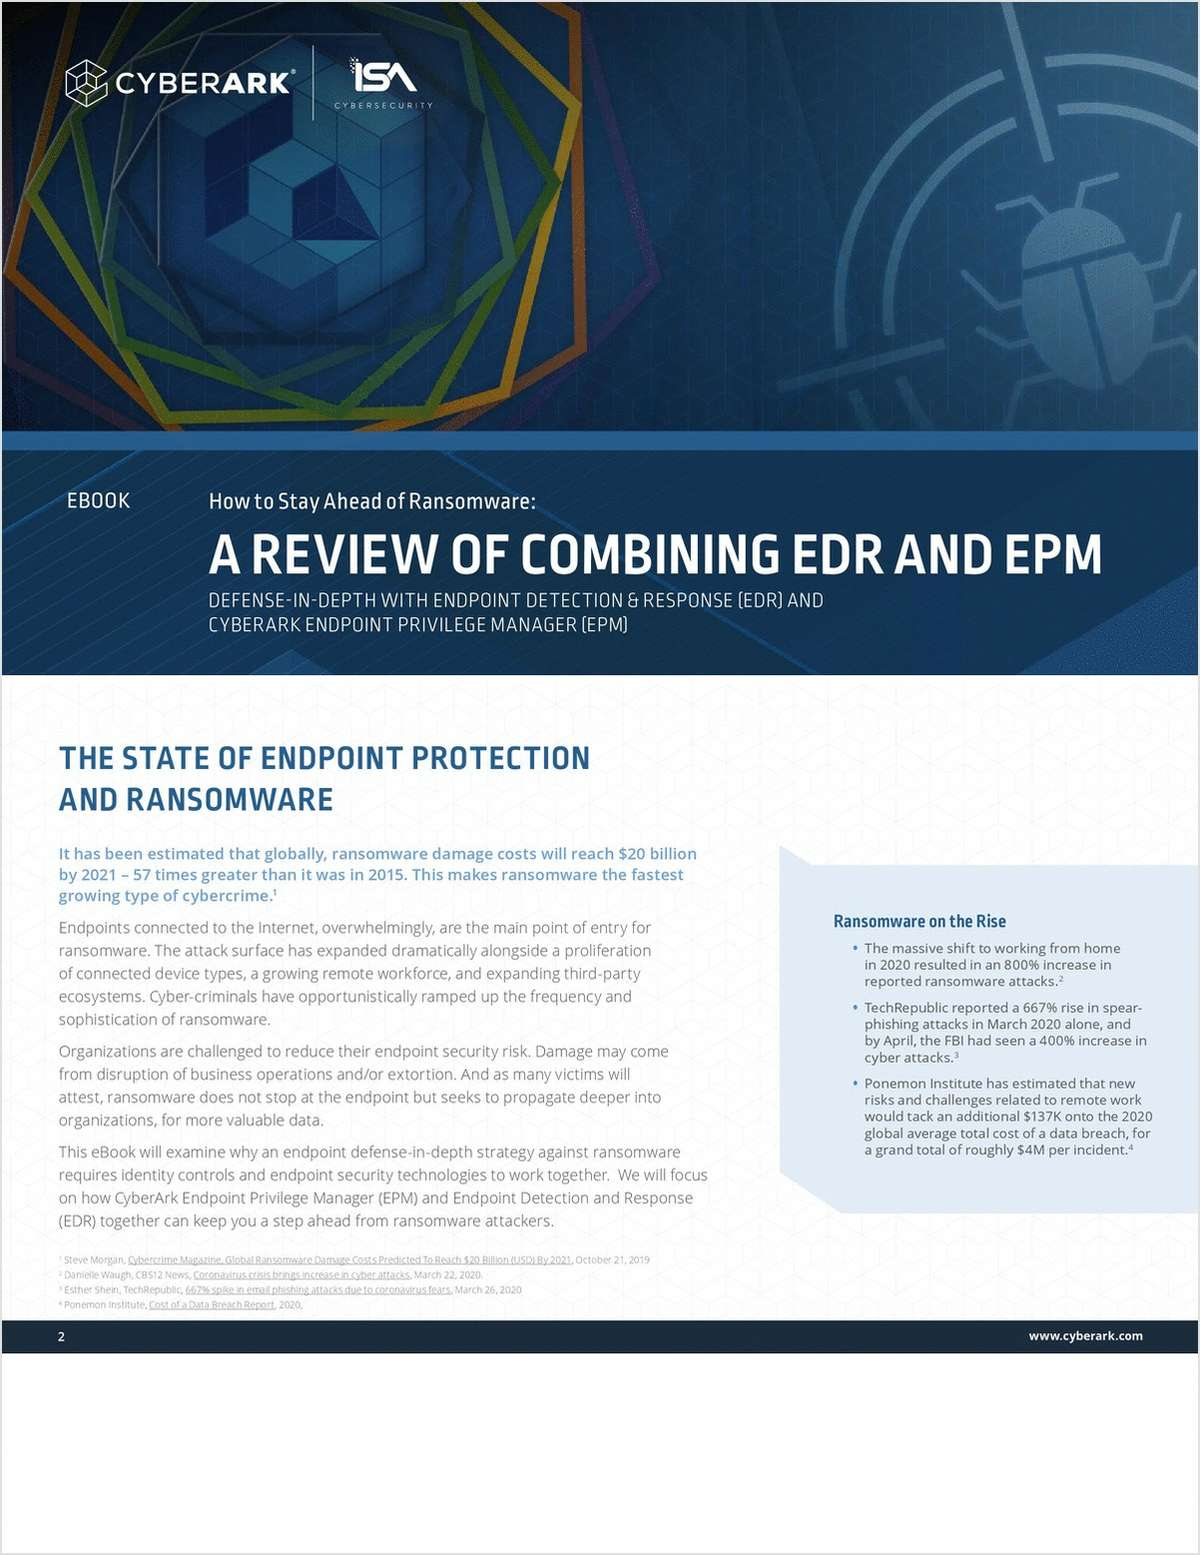 How To Stay Ahead of Ransomware: A Review of Combining EDR and EPM